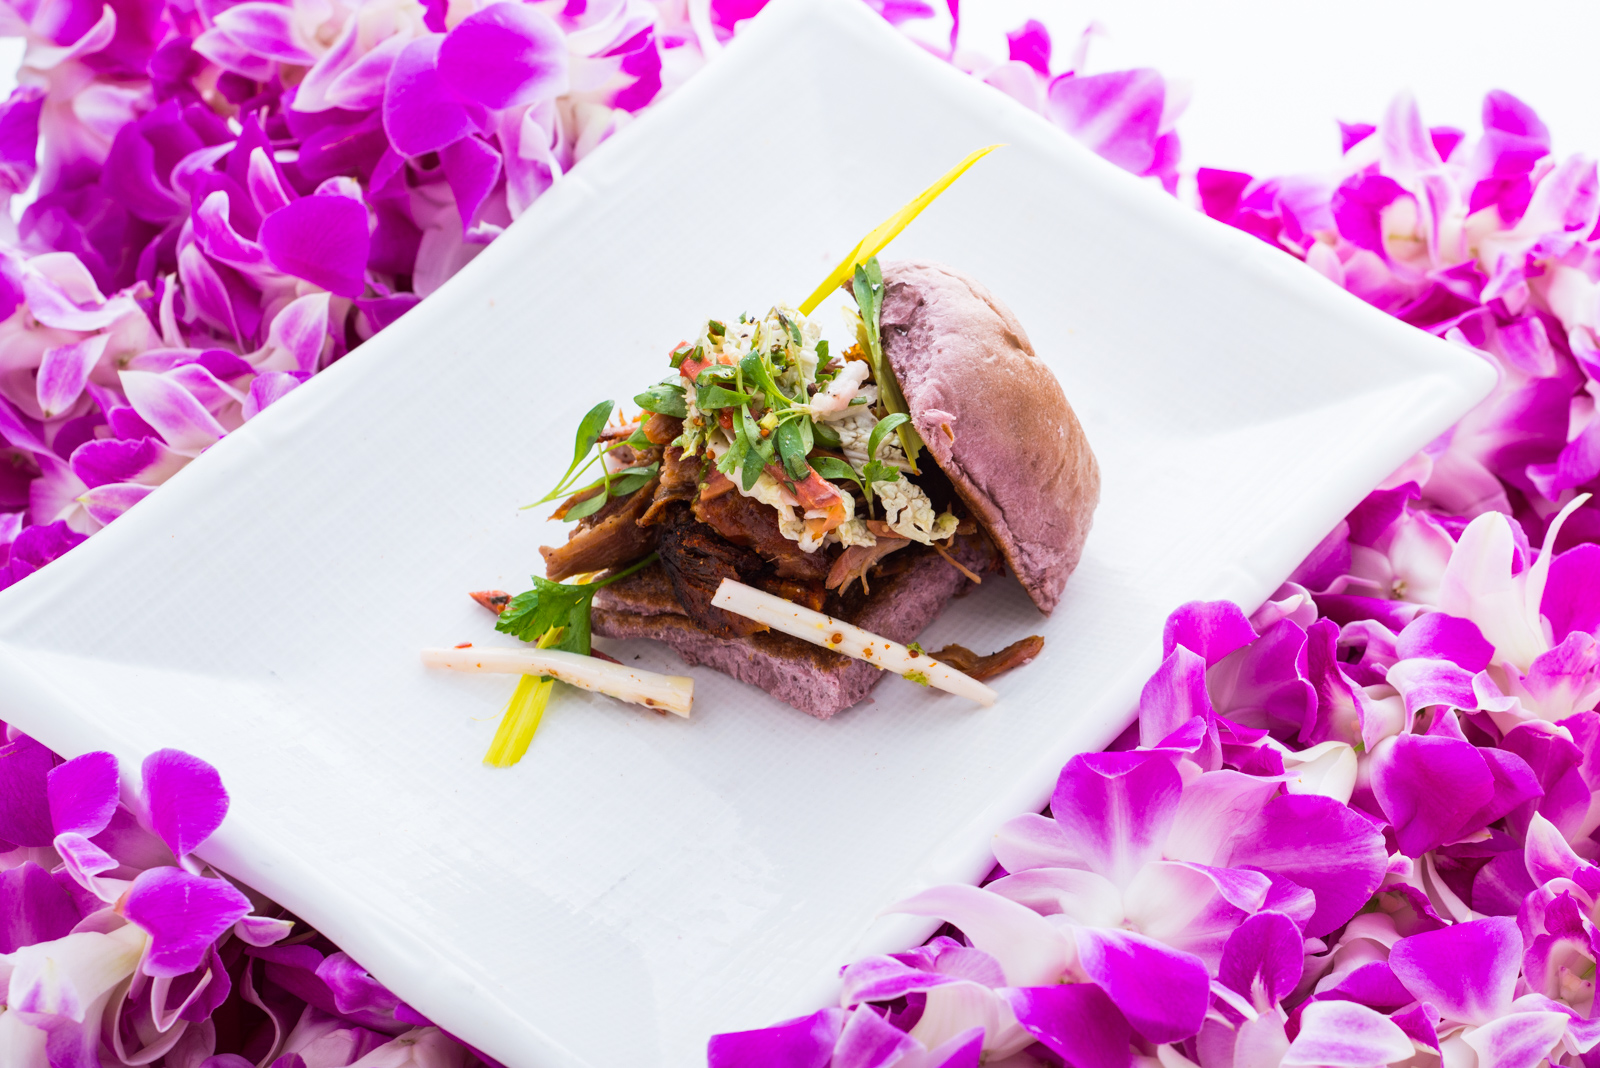 Chicago chef Art Smith whipped up some great pulled pork with hearts of palm at the Hawaii Food and Wine Festival.